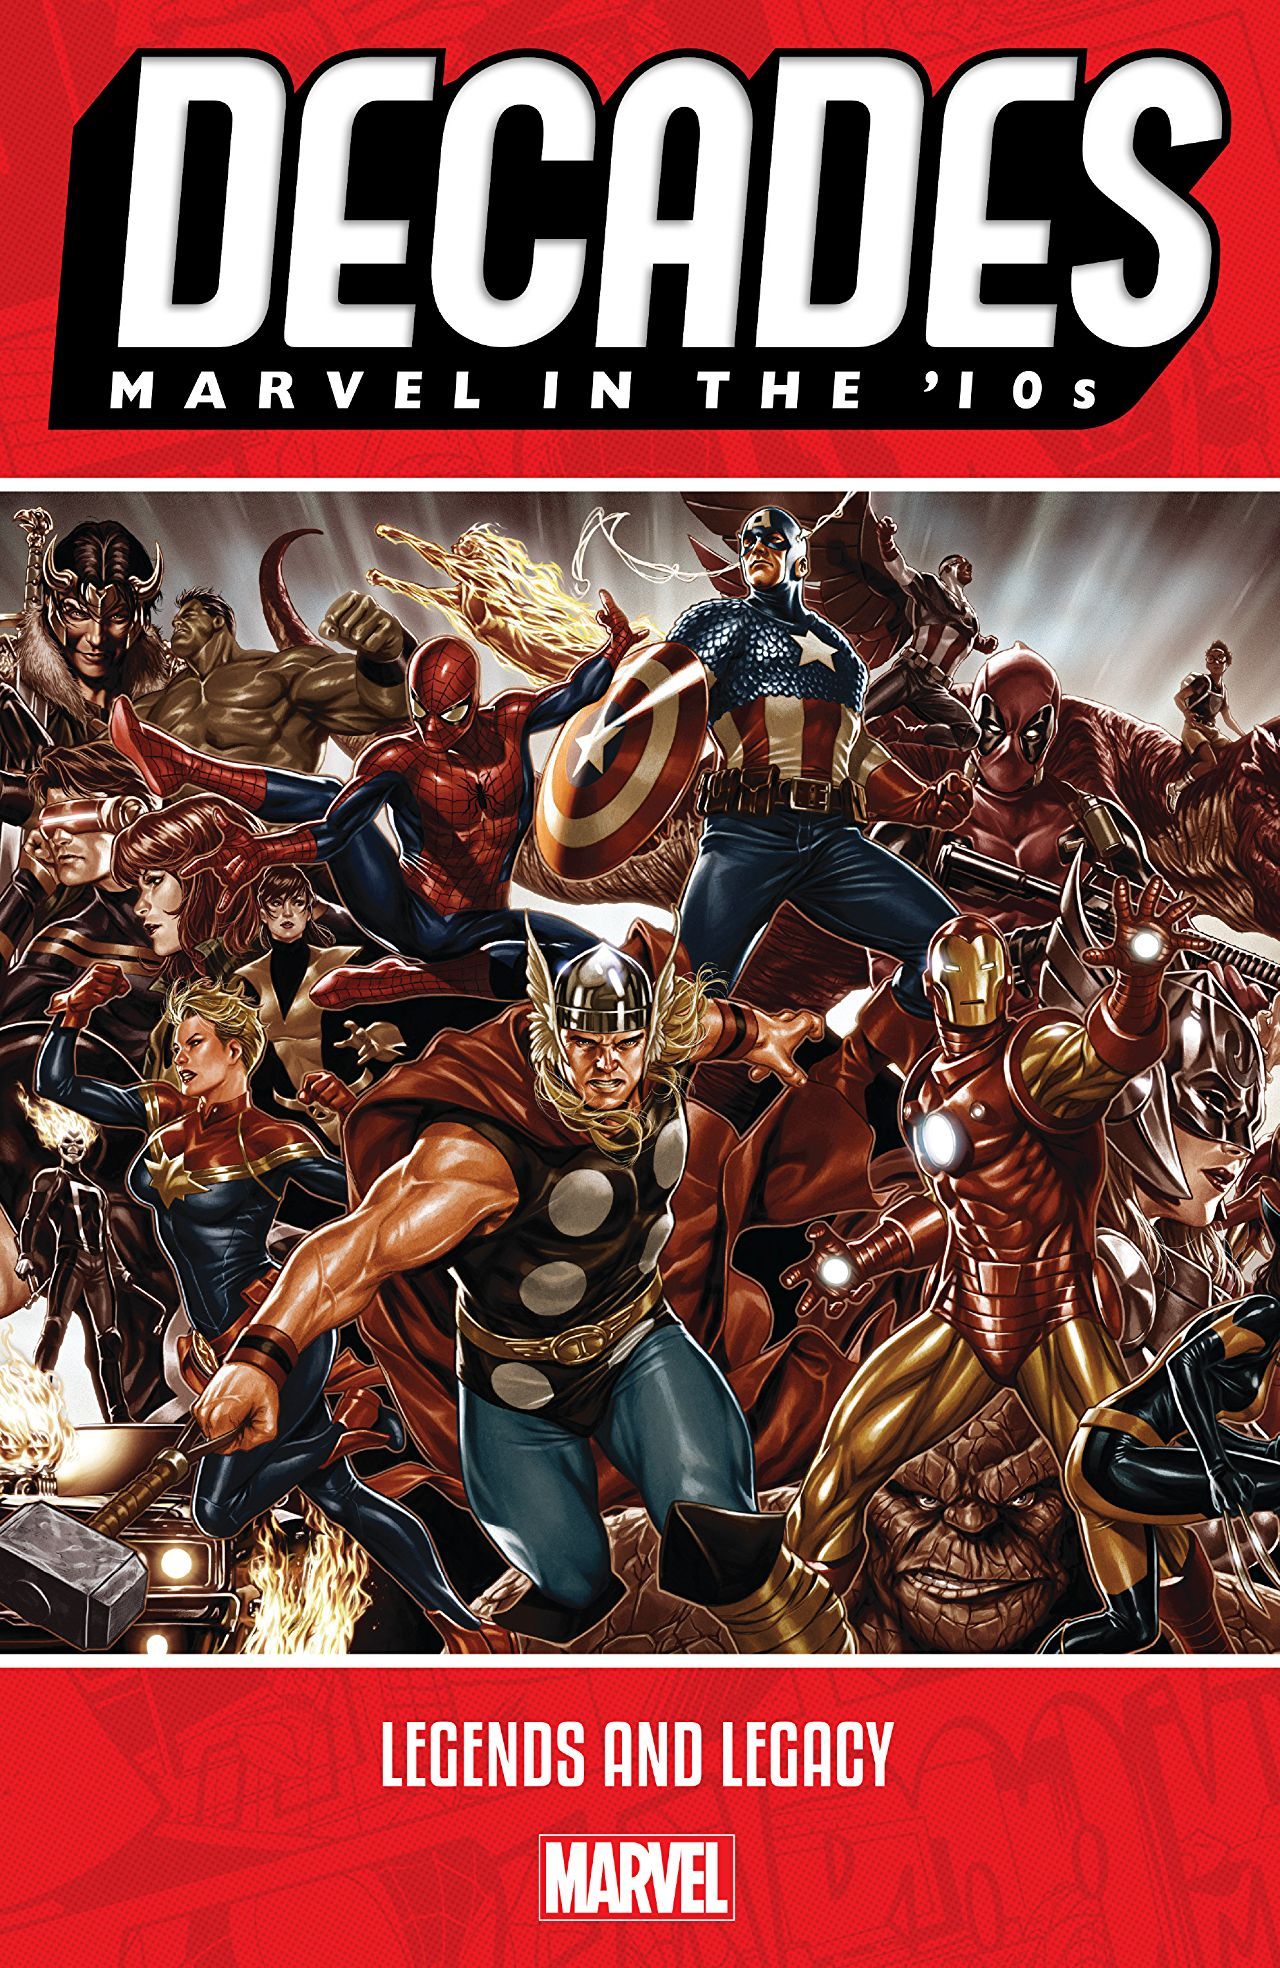 Marvel's celebration of 80 years reaches the present decade!